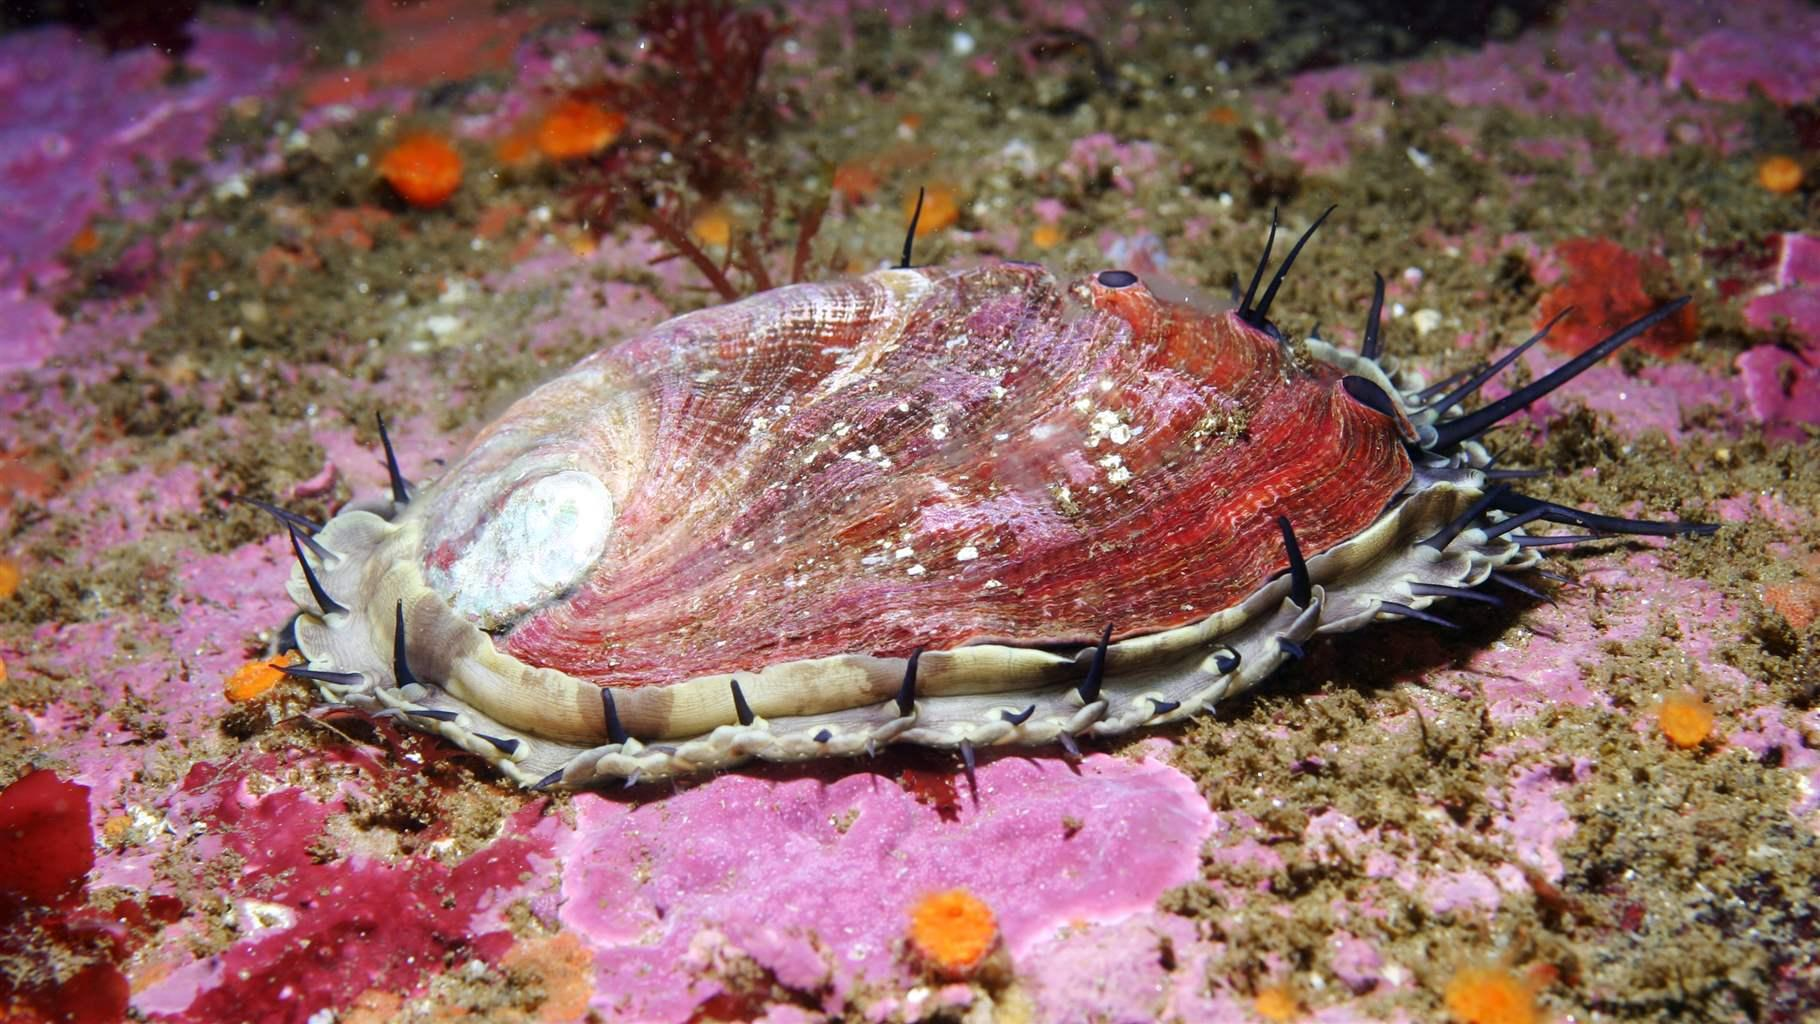 Red abalone